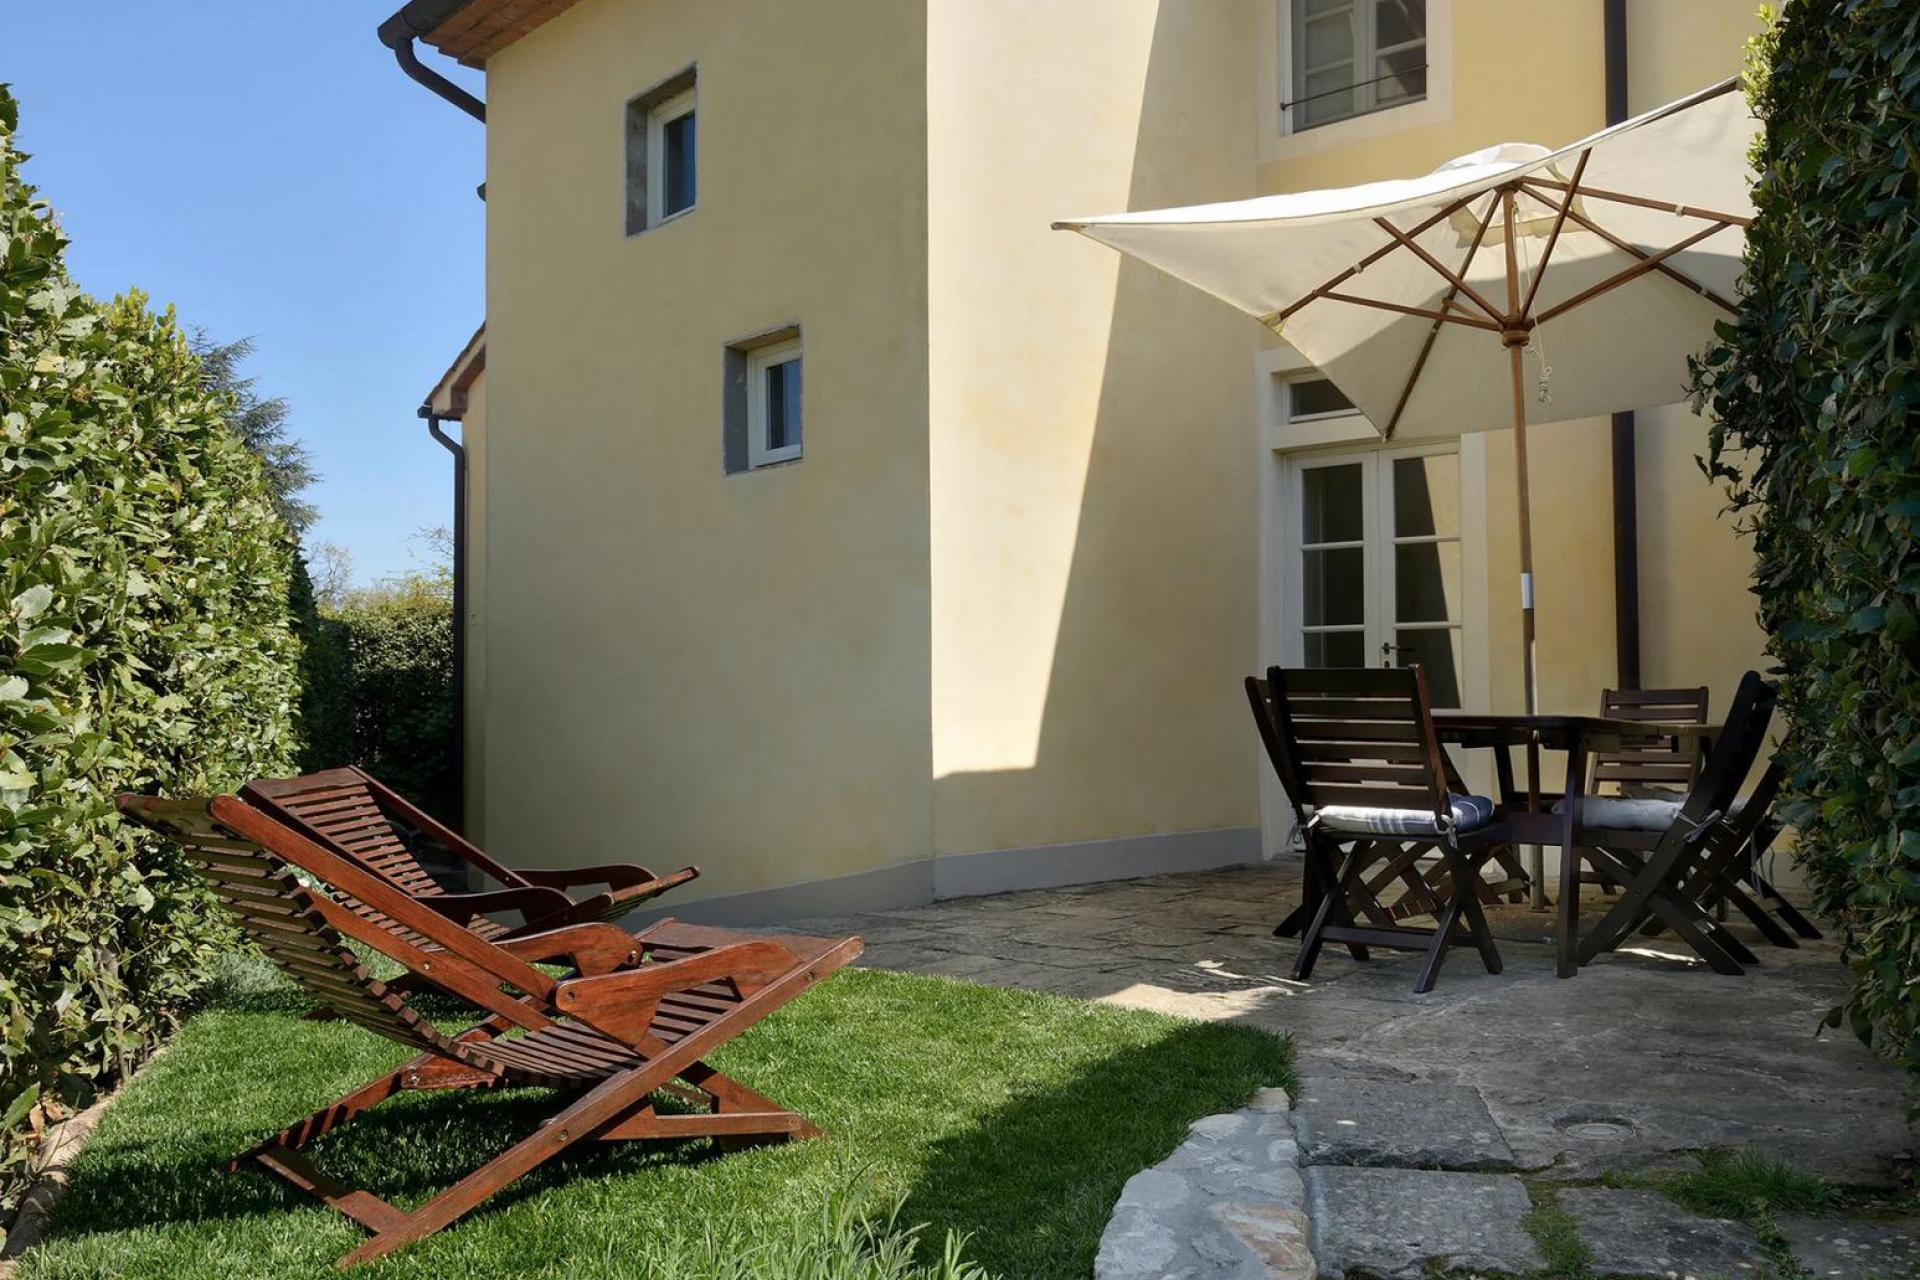 Agriturismo Tuscany Child friendly agriturismo Tuscany, stylish and popular!